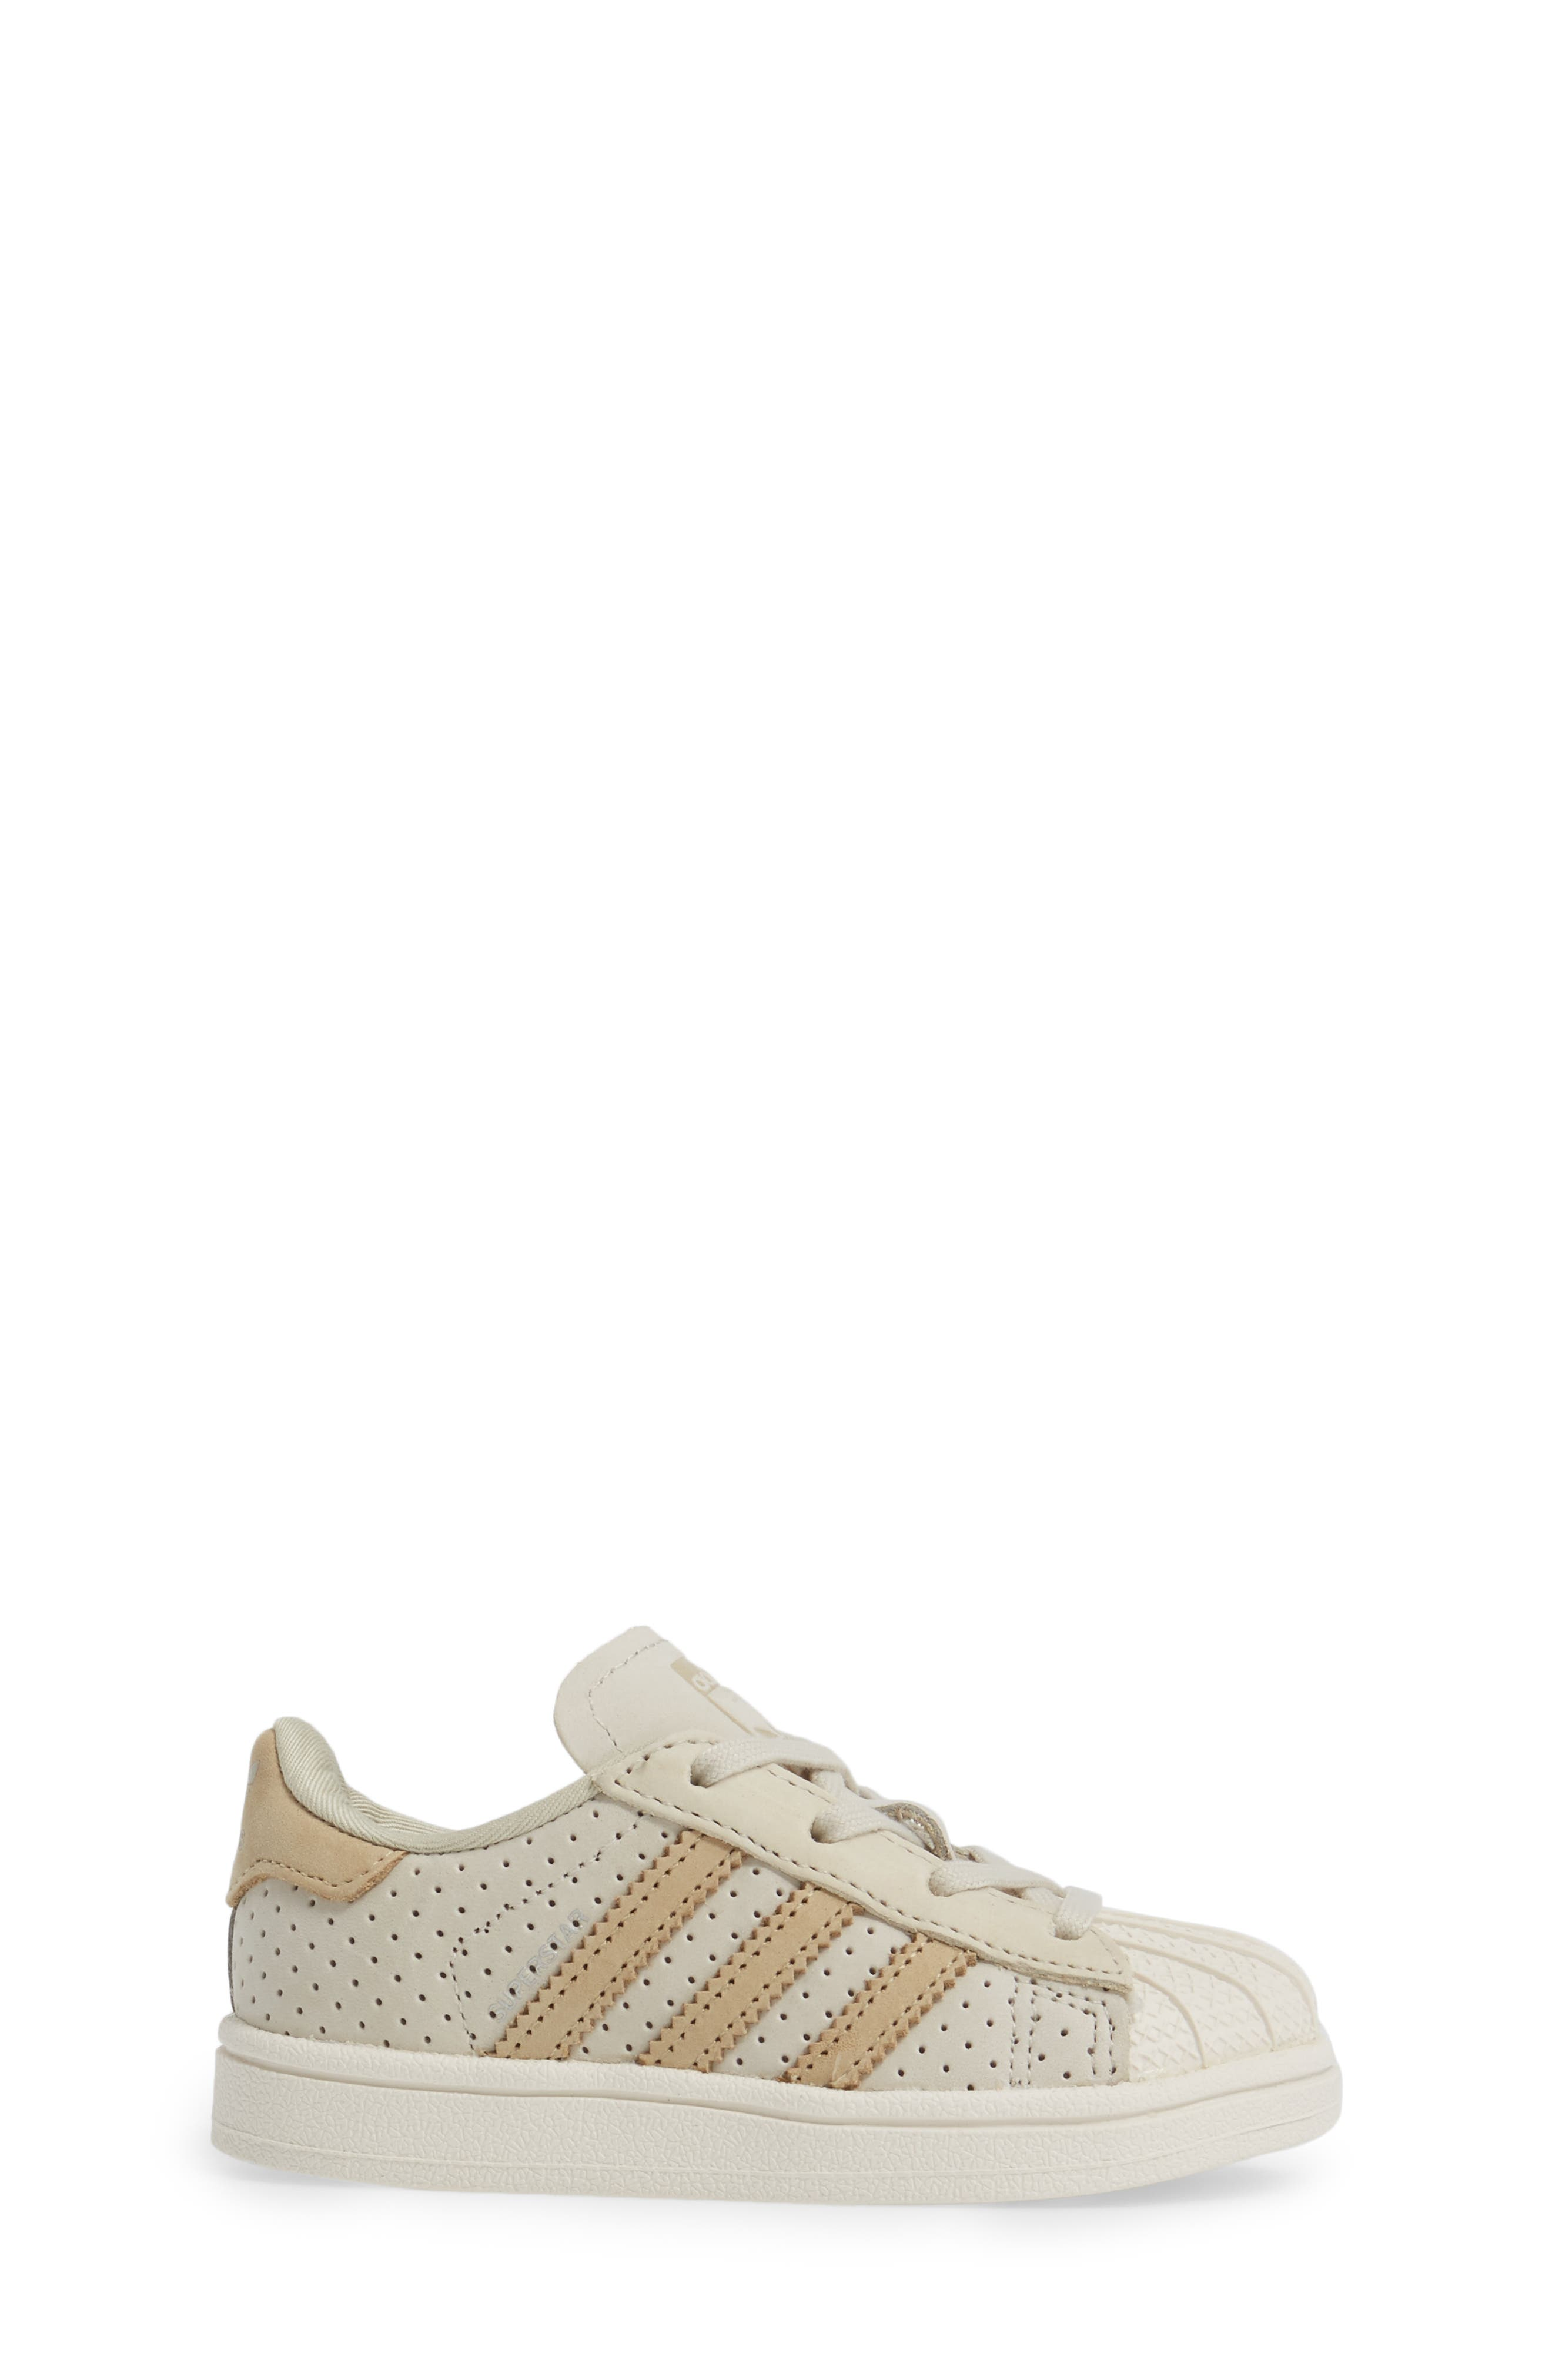 Alternate Image 3  - adidas Stan Smith Fashion I Perforated Sneaker (Baby, Walker, Toddler & Little Kid)